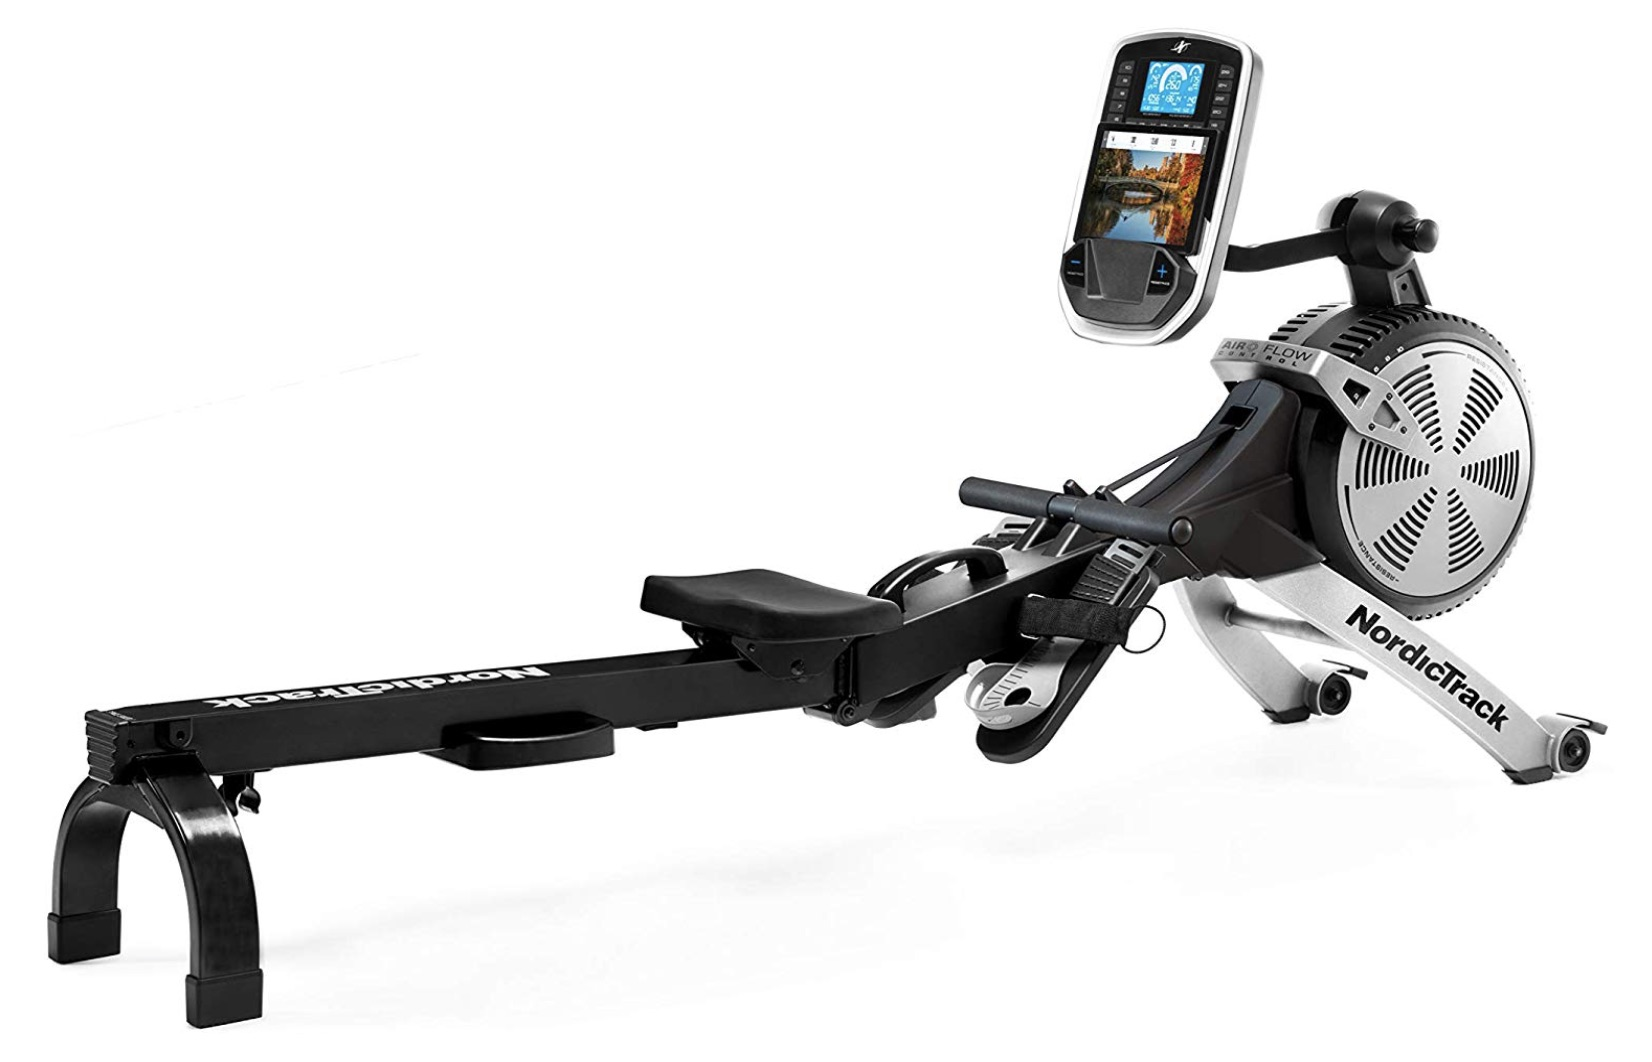 NordicTrack RW500 Rower Review • Rowing Machine King